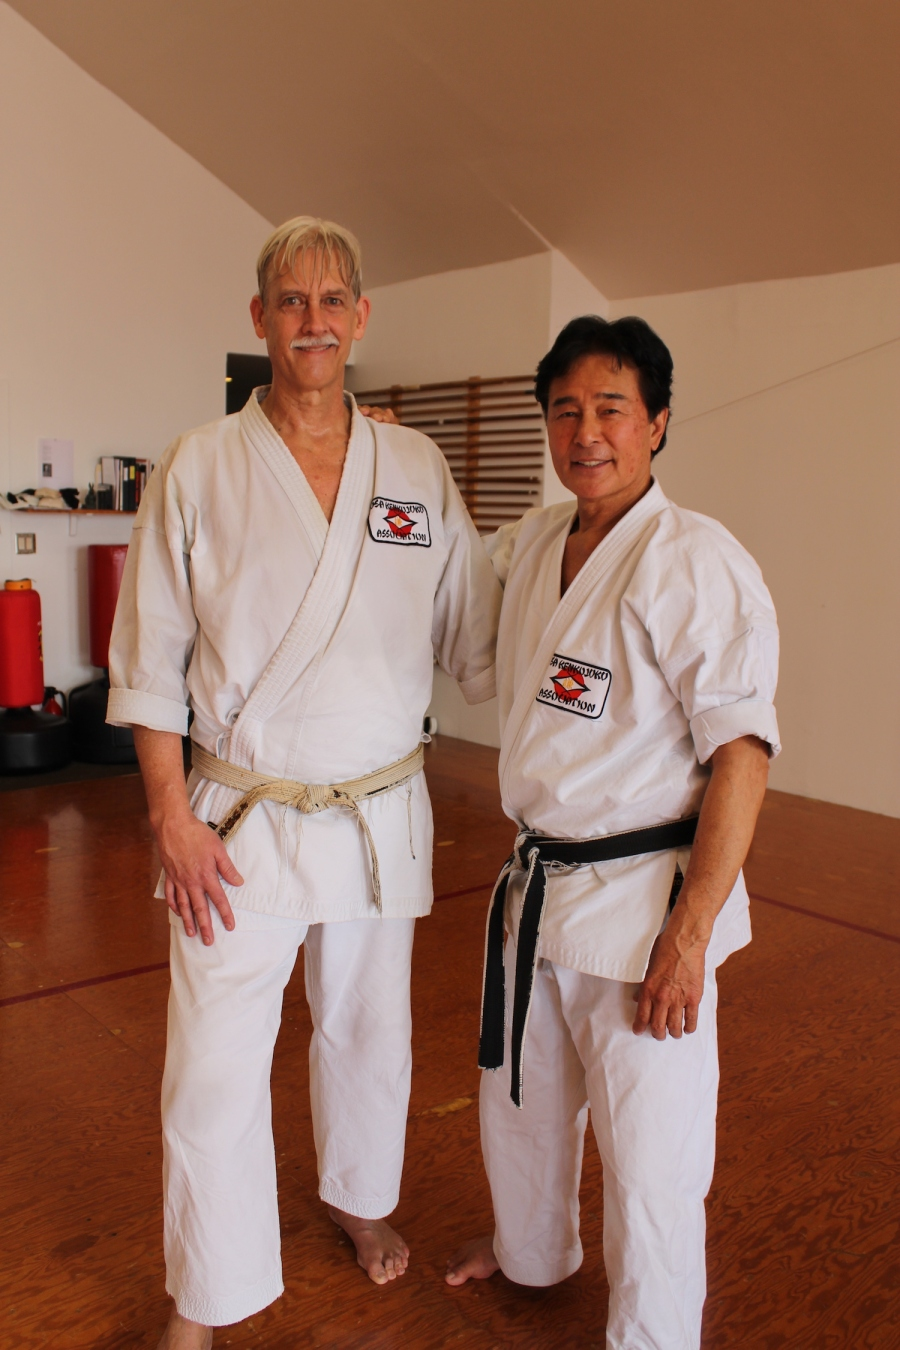 Rick_7th degree black belt